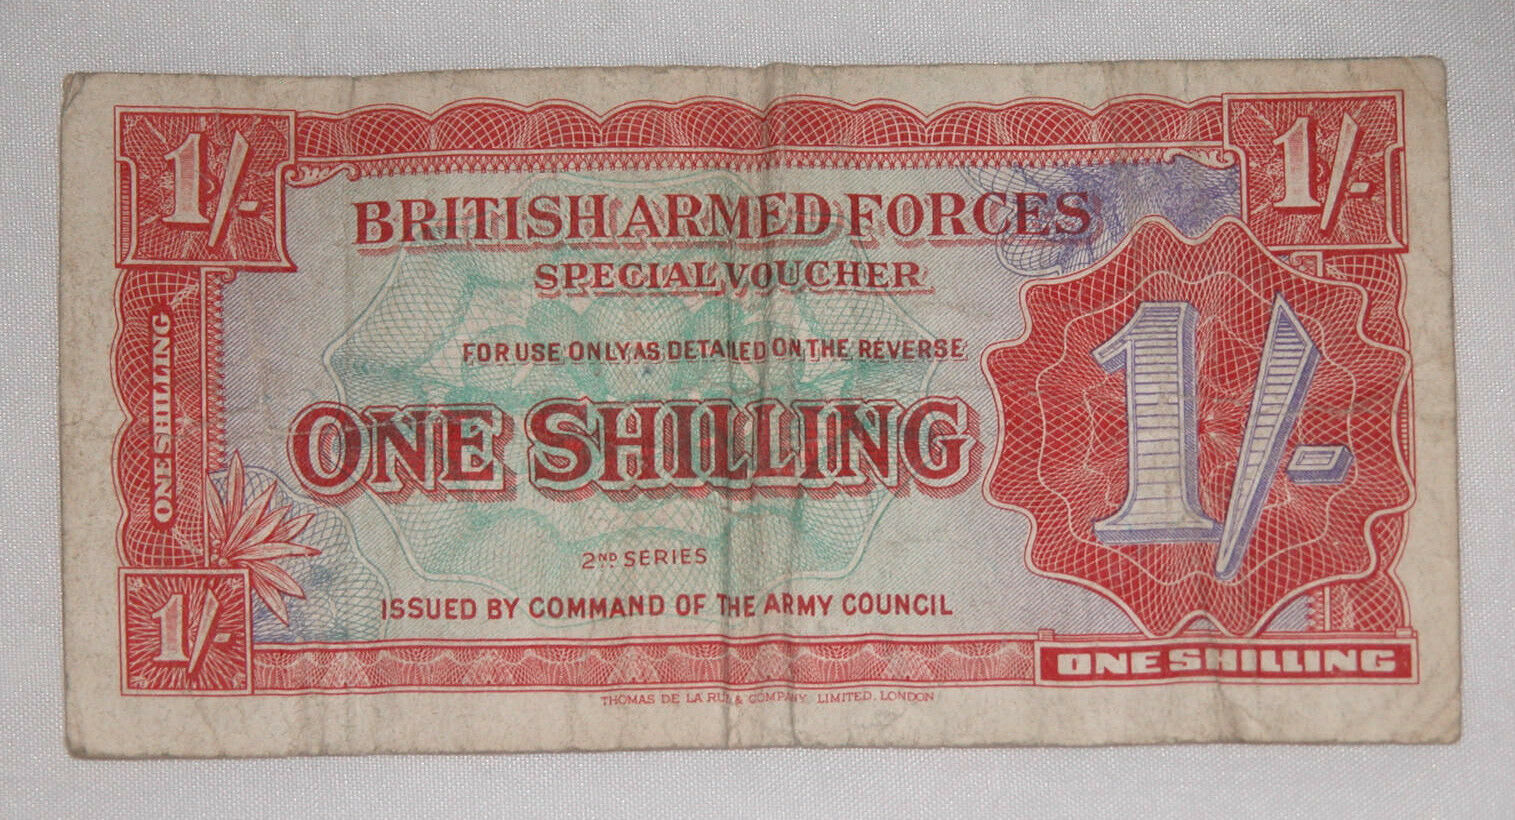 Primary image for British Armed Forces Special Voucher ONE SHILLING 2nd Series 1952 USA